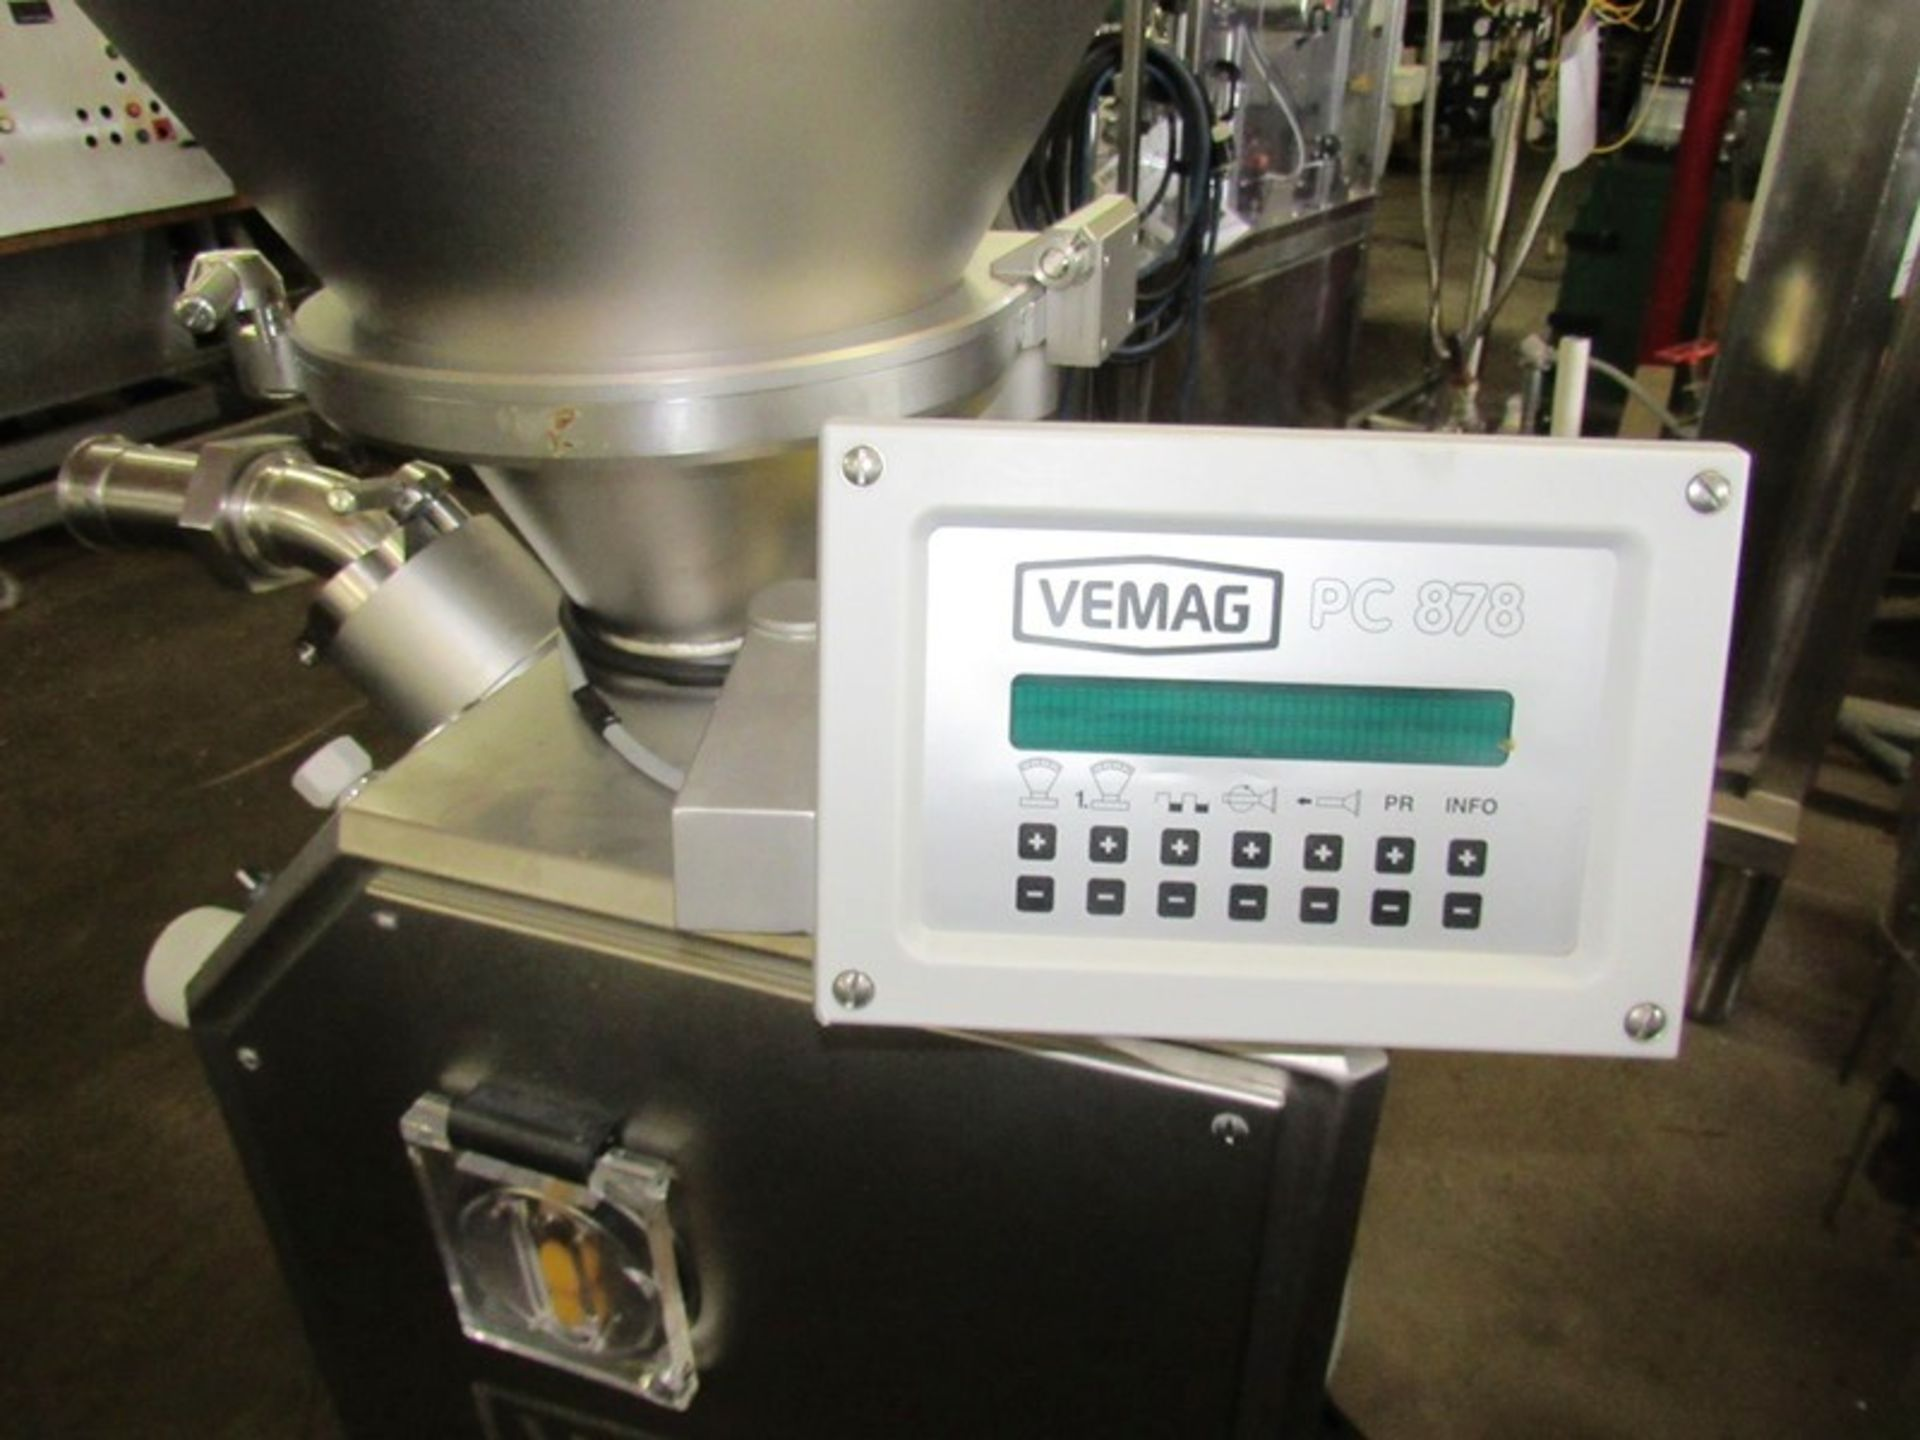 Lot 13 - Vemag Mdl. Robot 500 Continuous Stuffer, PC878 controls, Ser. #1285336 220 Volts